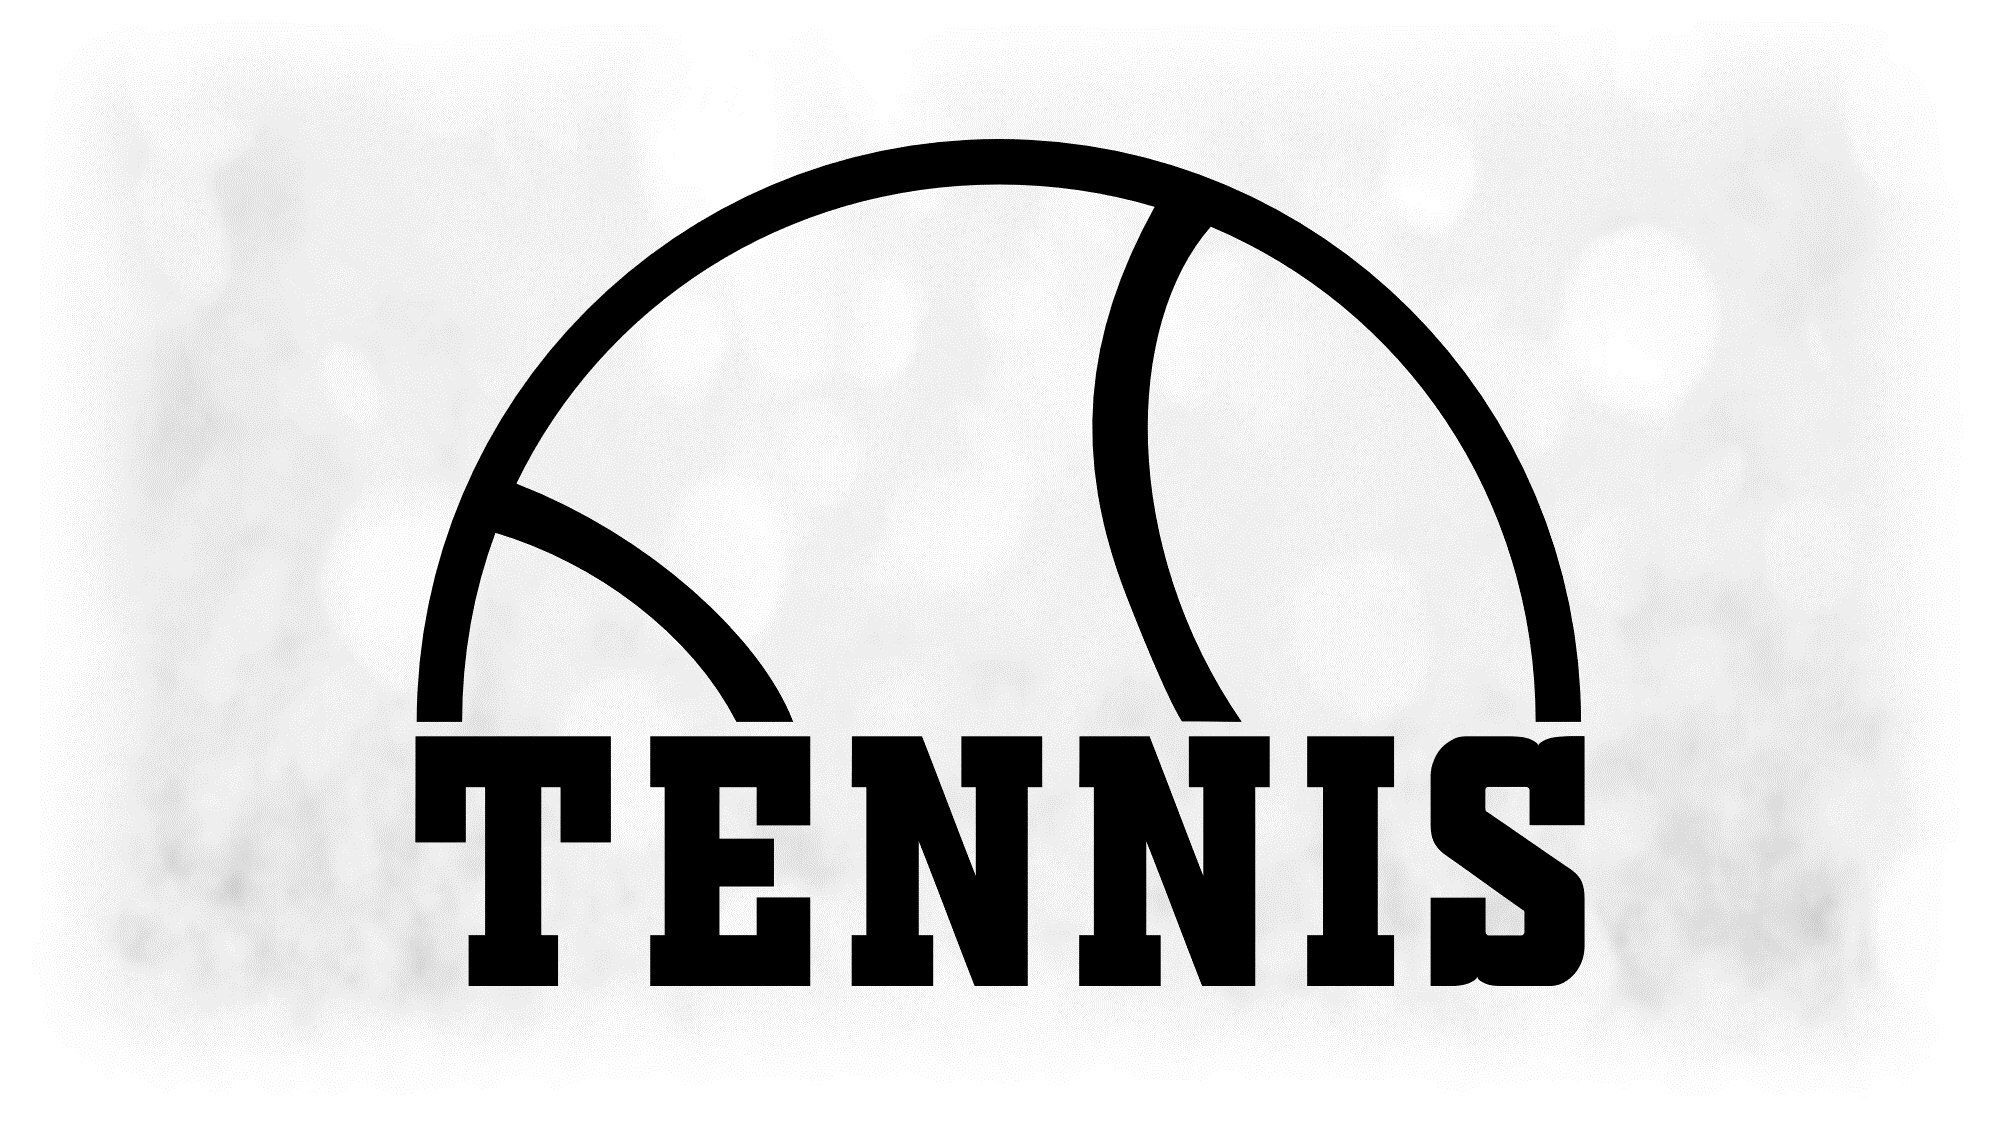 Sports Clipart Large Black And White Half Tennis Ball With Etsy Bold Words Tennis Ball Tennis